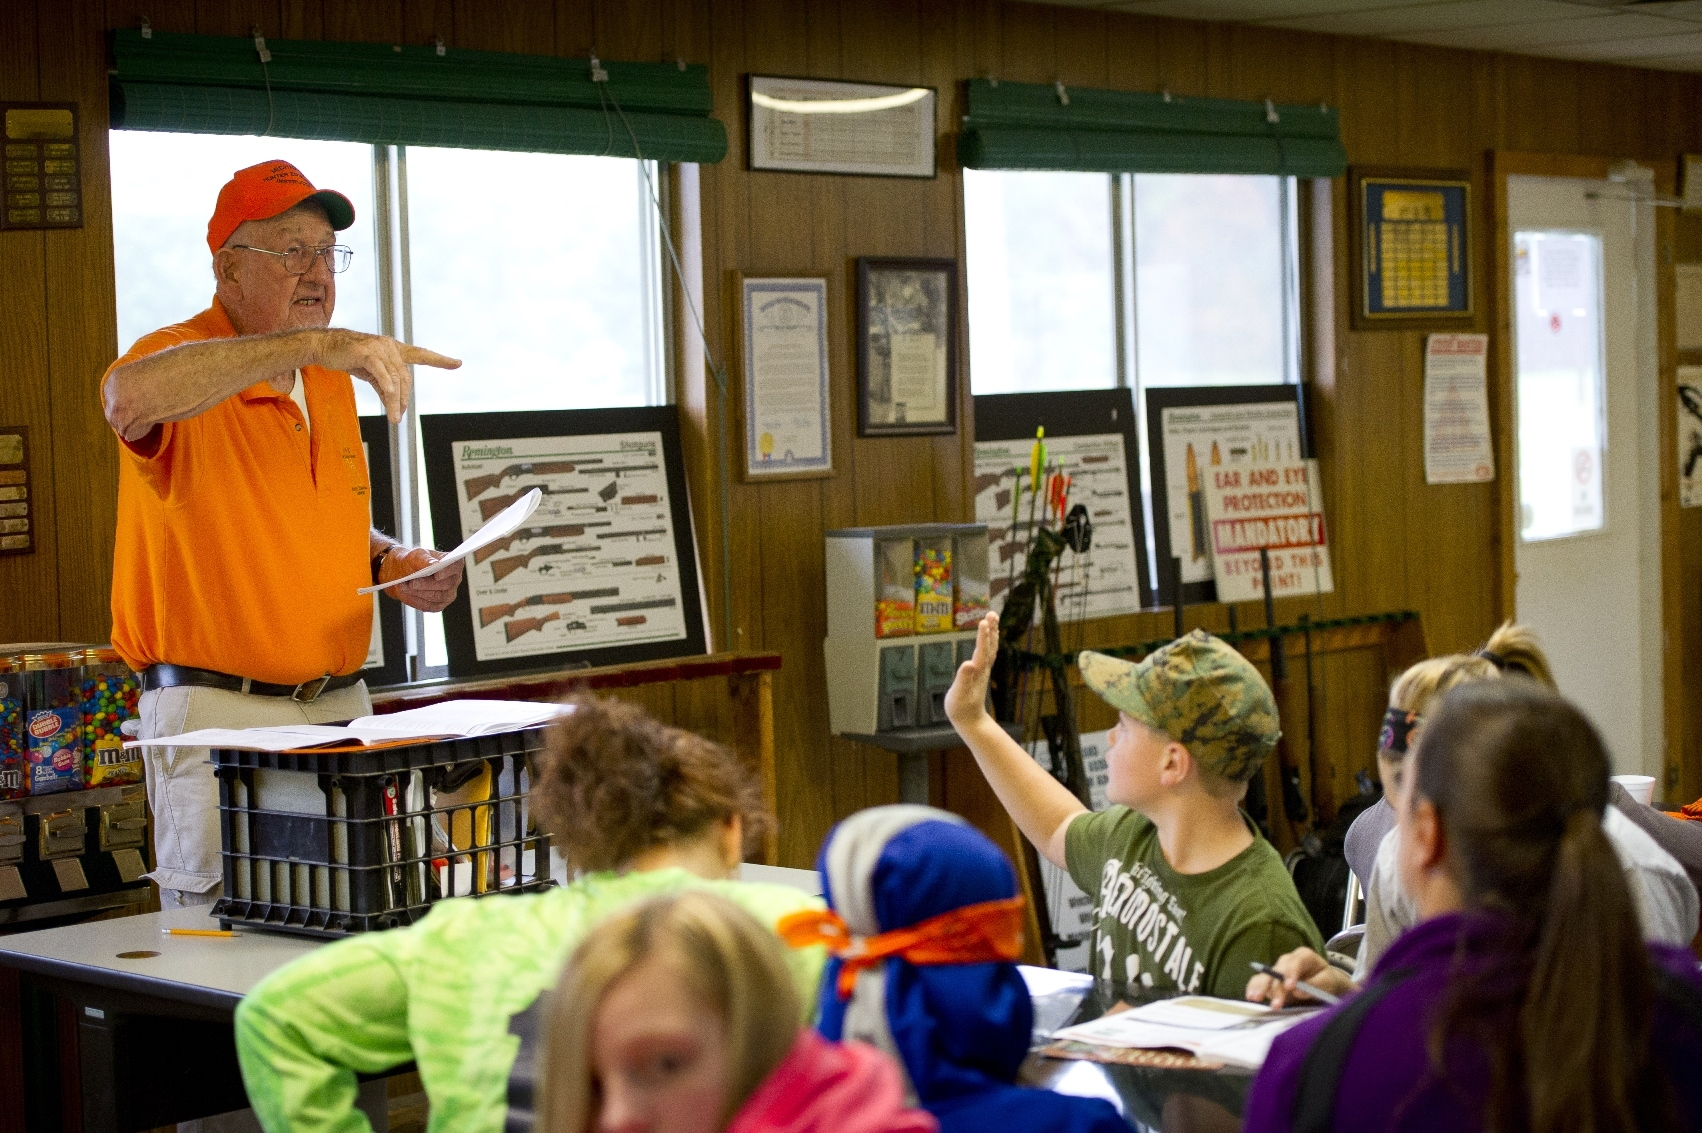 In Michigan, a traditional classroom hunter safety course involves a minimum of 10 hours spread over at least two days.